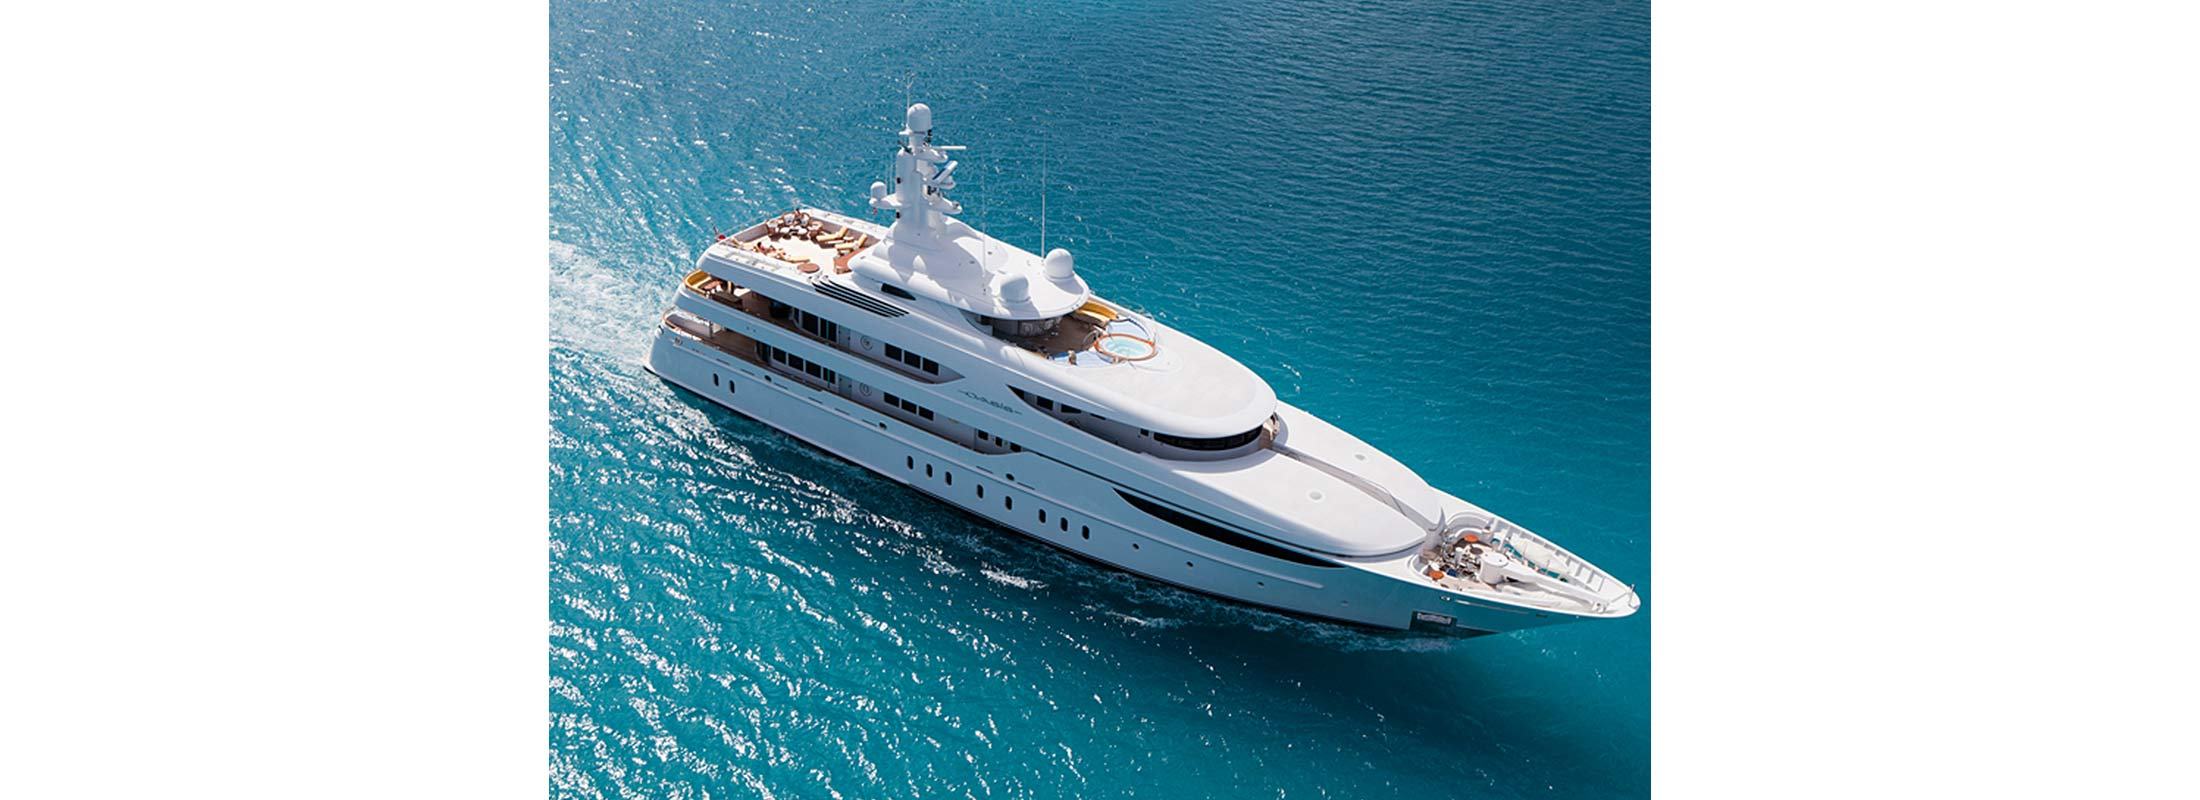 Oasis Yacht Charter Details   Abberley Luxury Yachts